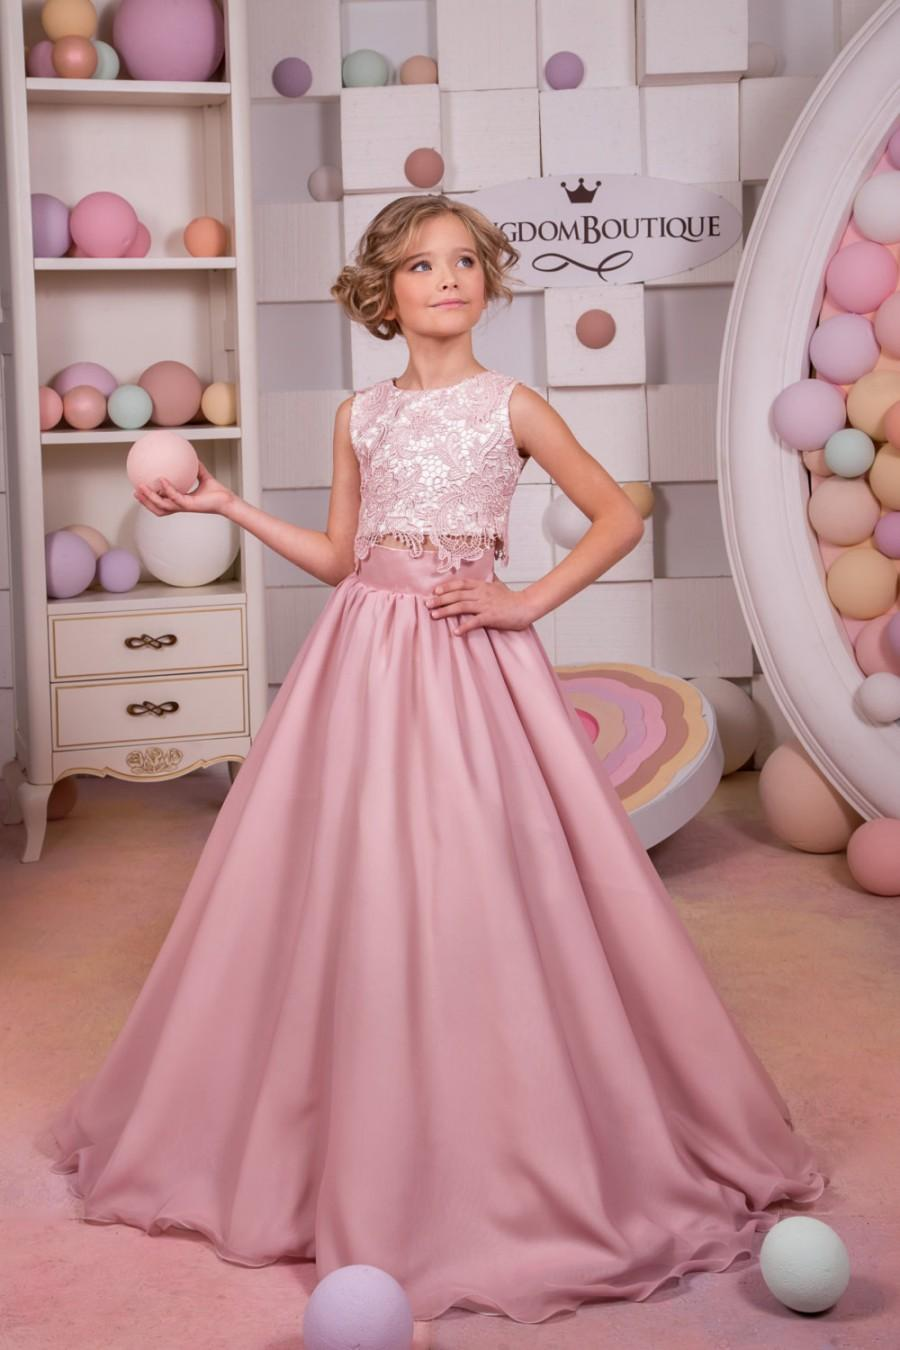 Blush Pink Lace Satin Flower Girl Dress Wedding Party Holiday